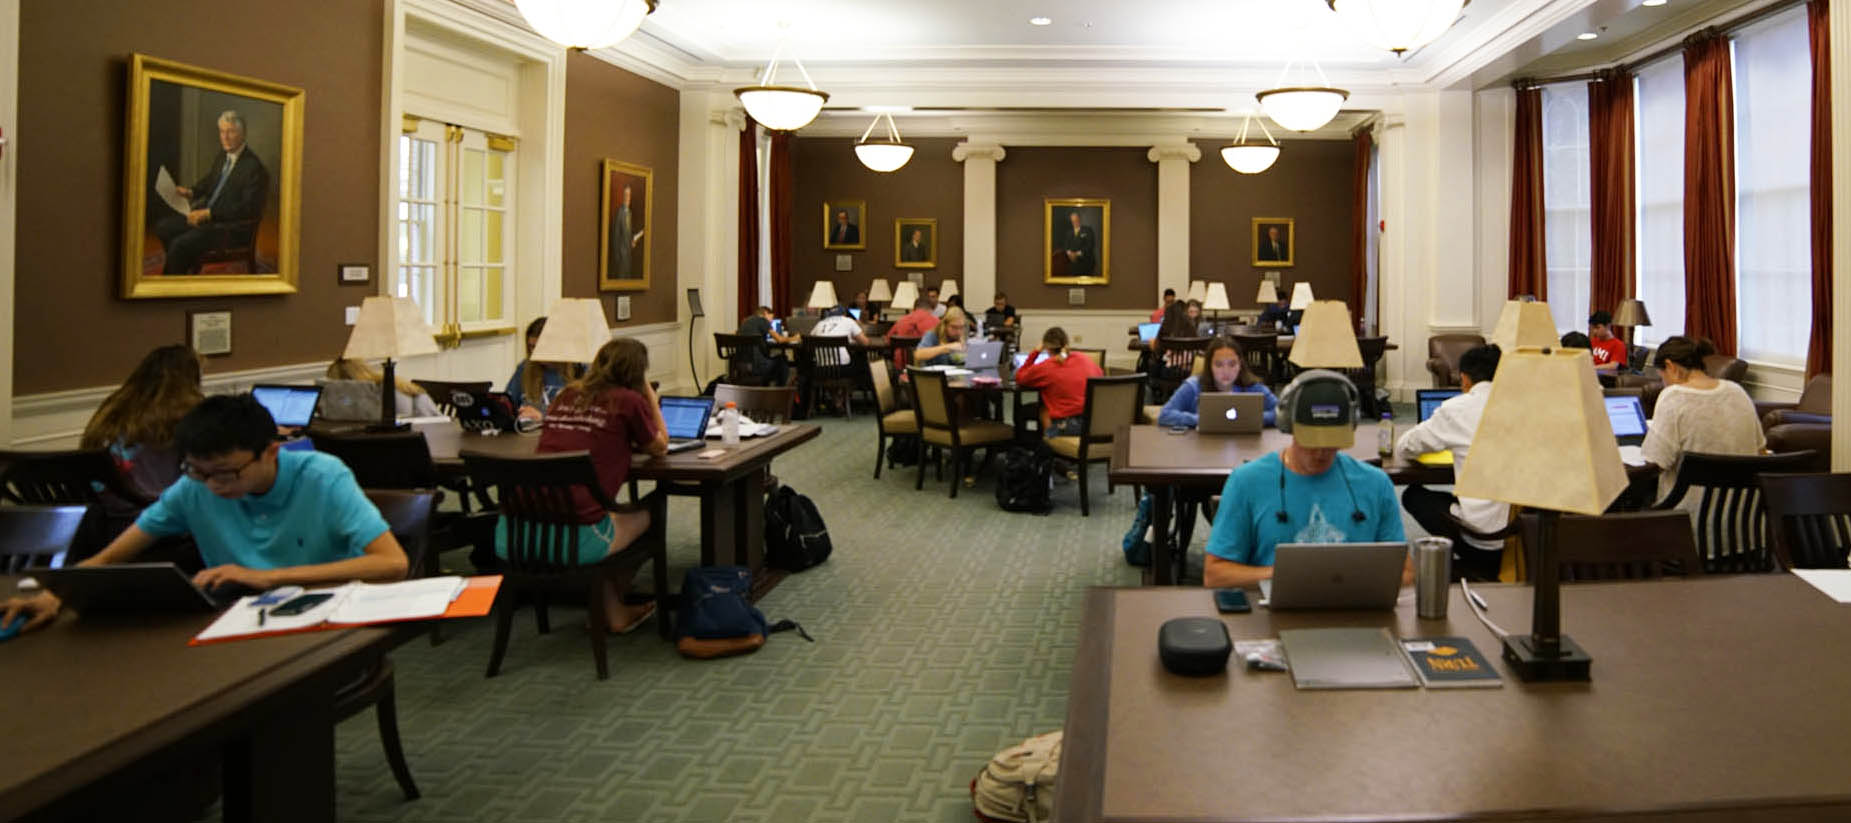 Student study in library at Farmer School